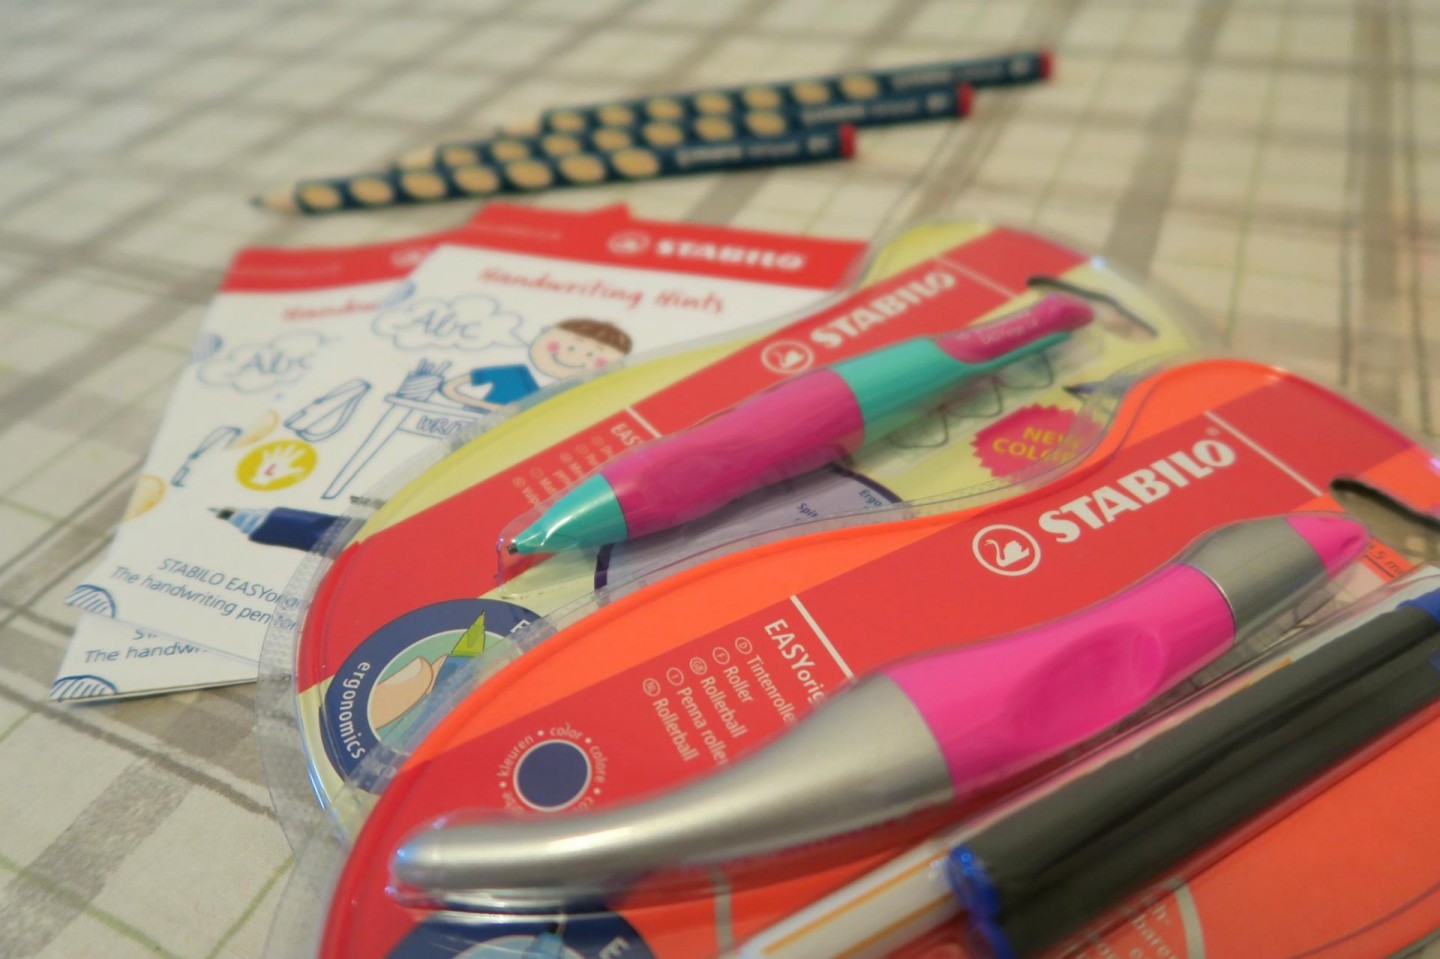 STABILO handwriting pens